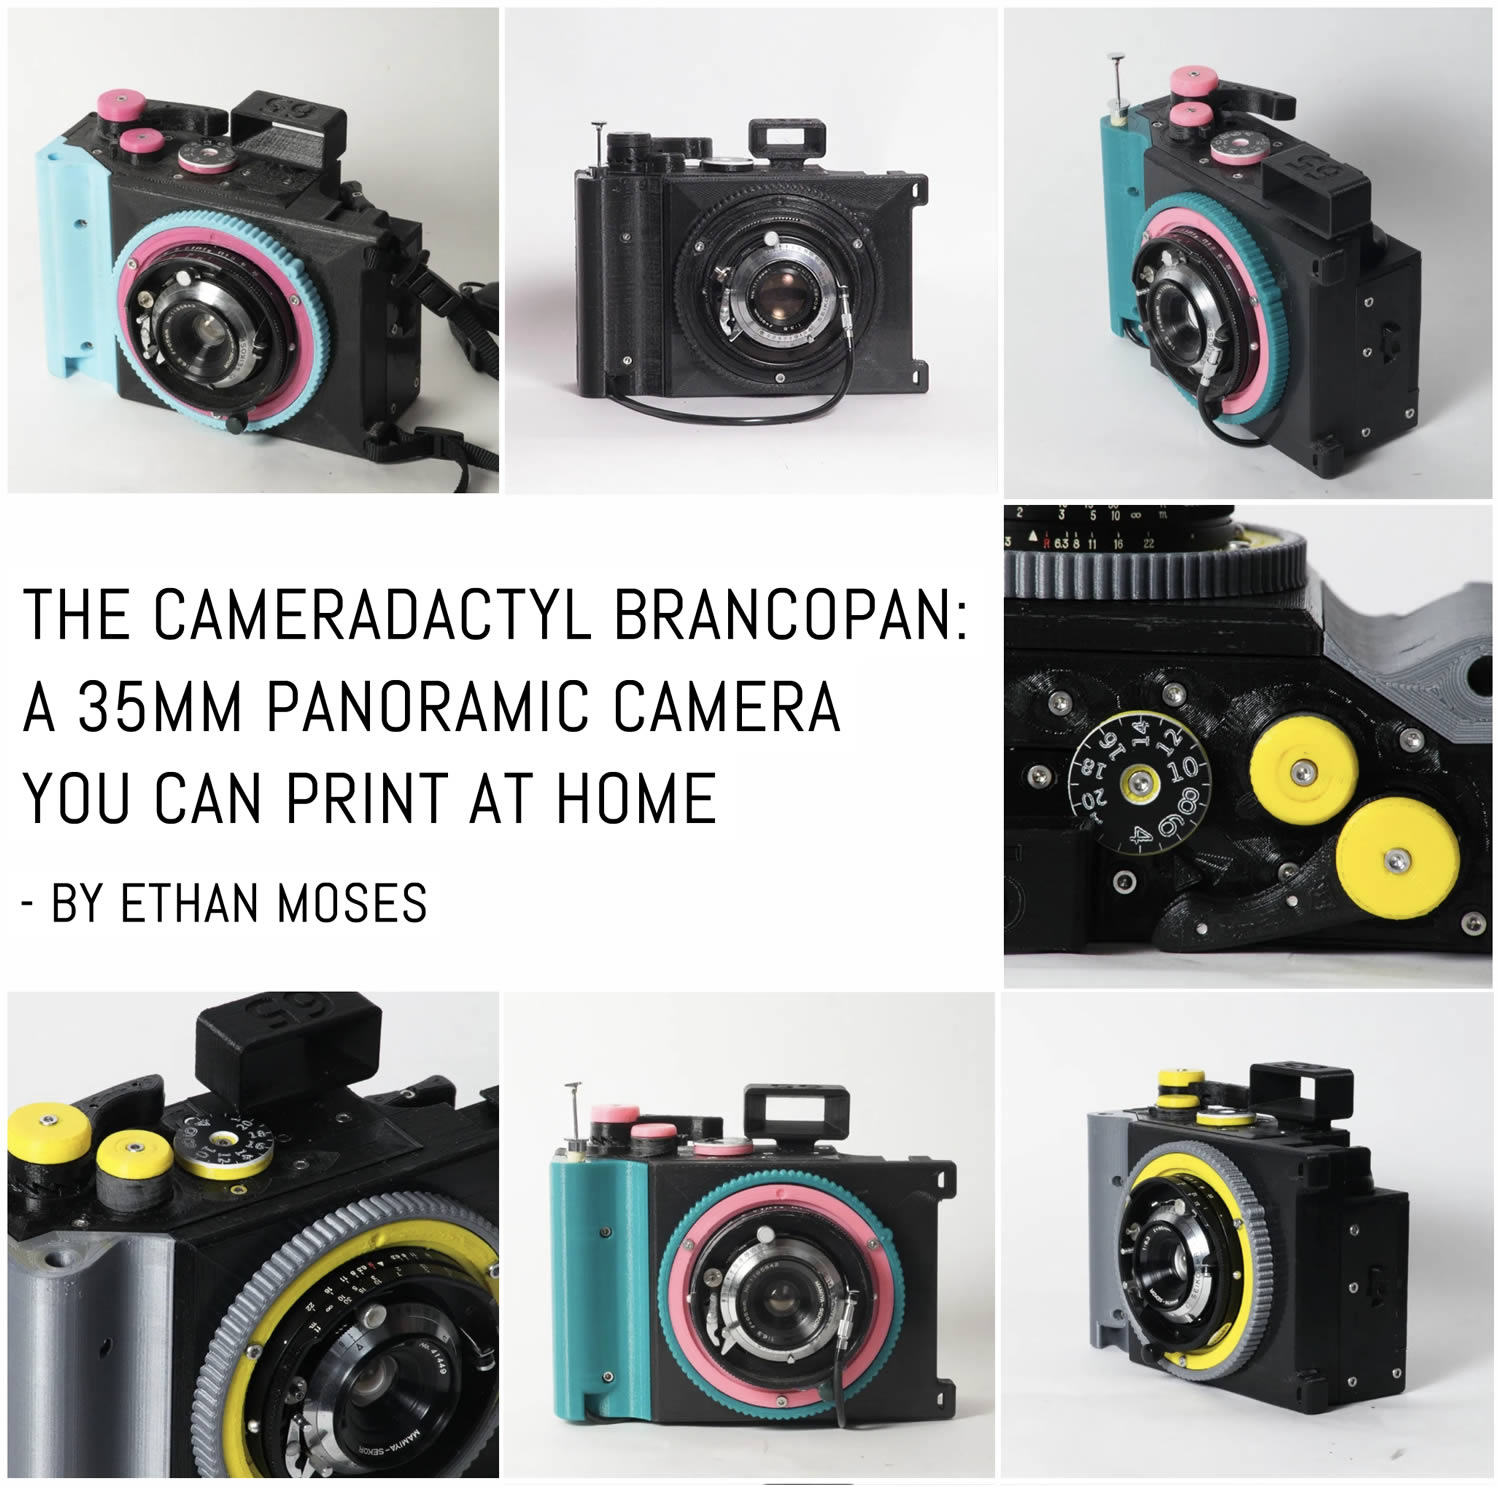 The CAMERADACTYL Brancopan is a 35mm panoramic camera you can print at home